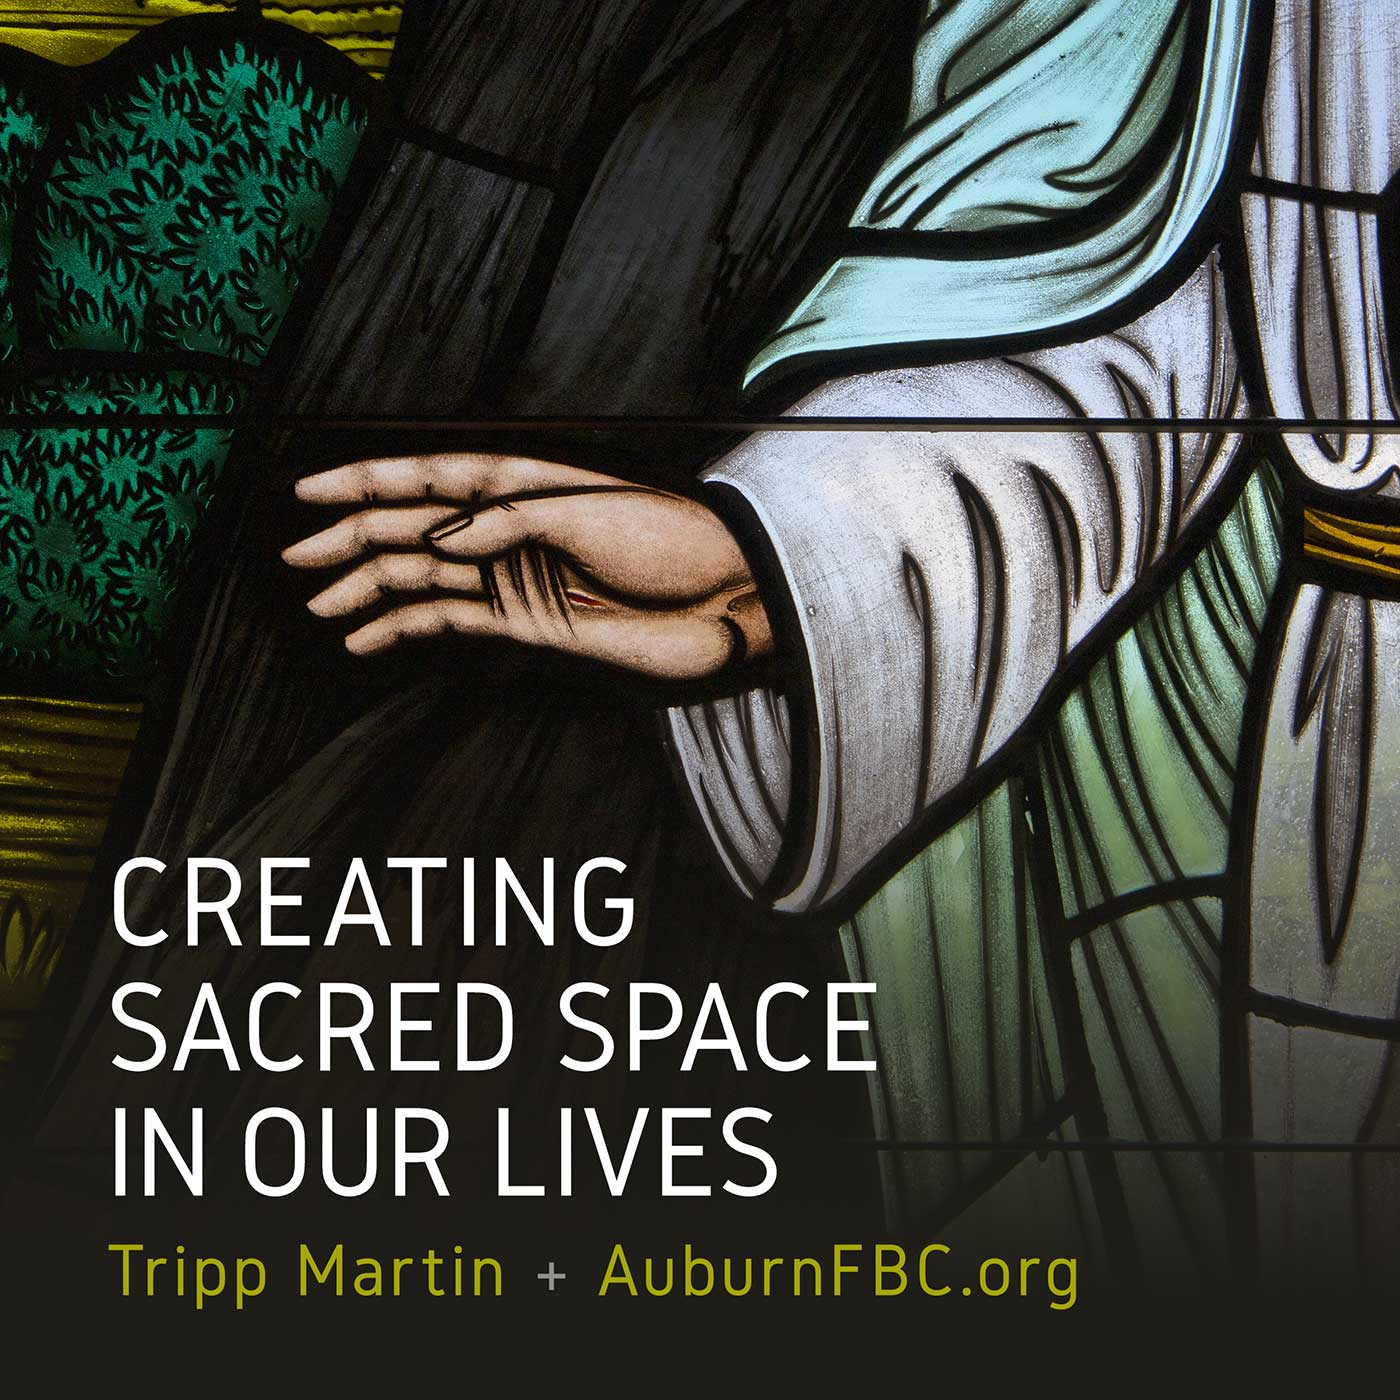 Creating Sacred Space in Our Lives